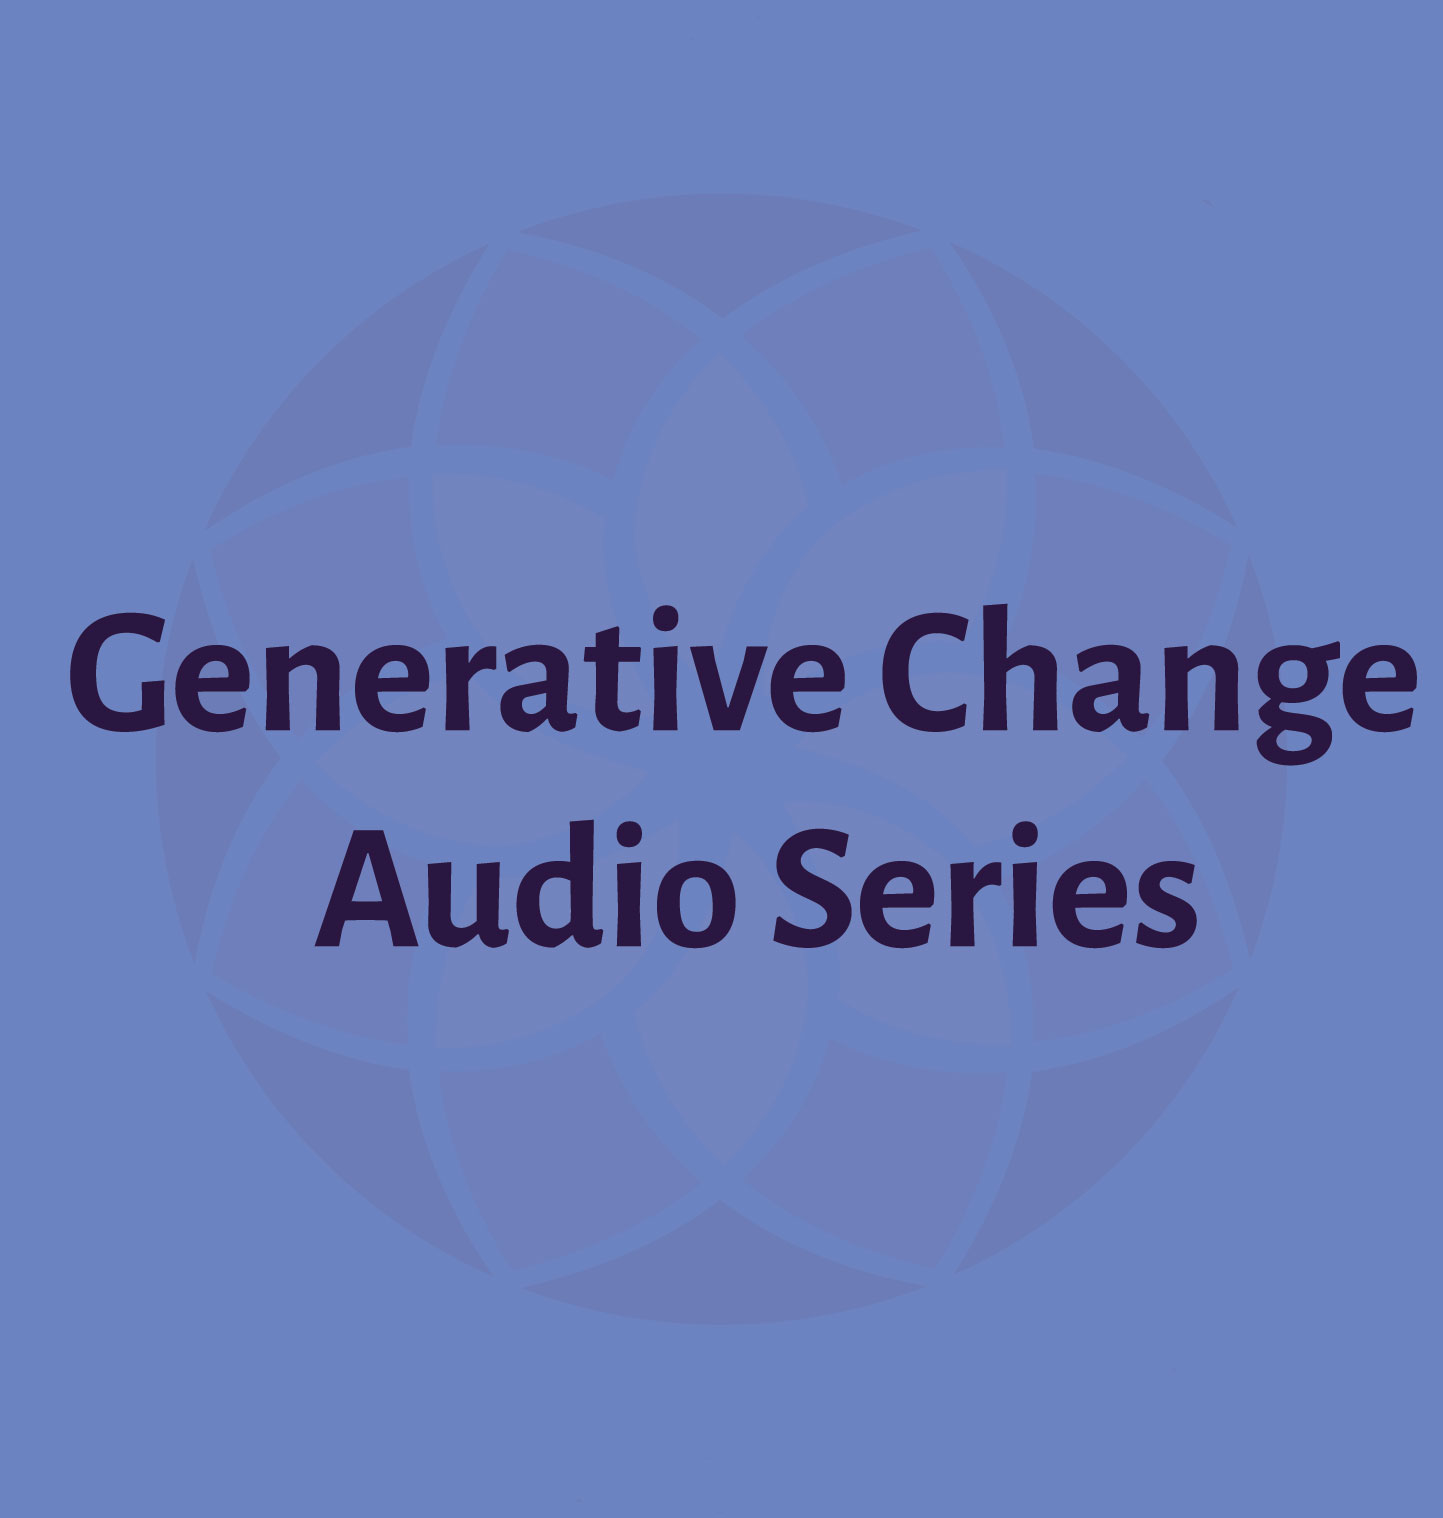 GC-Audio-Series-Main.jpg